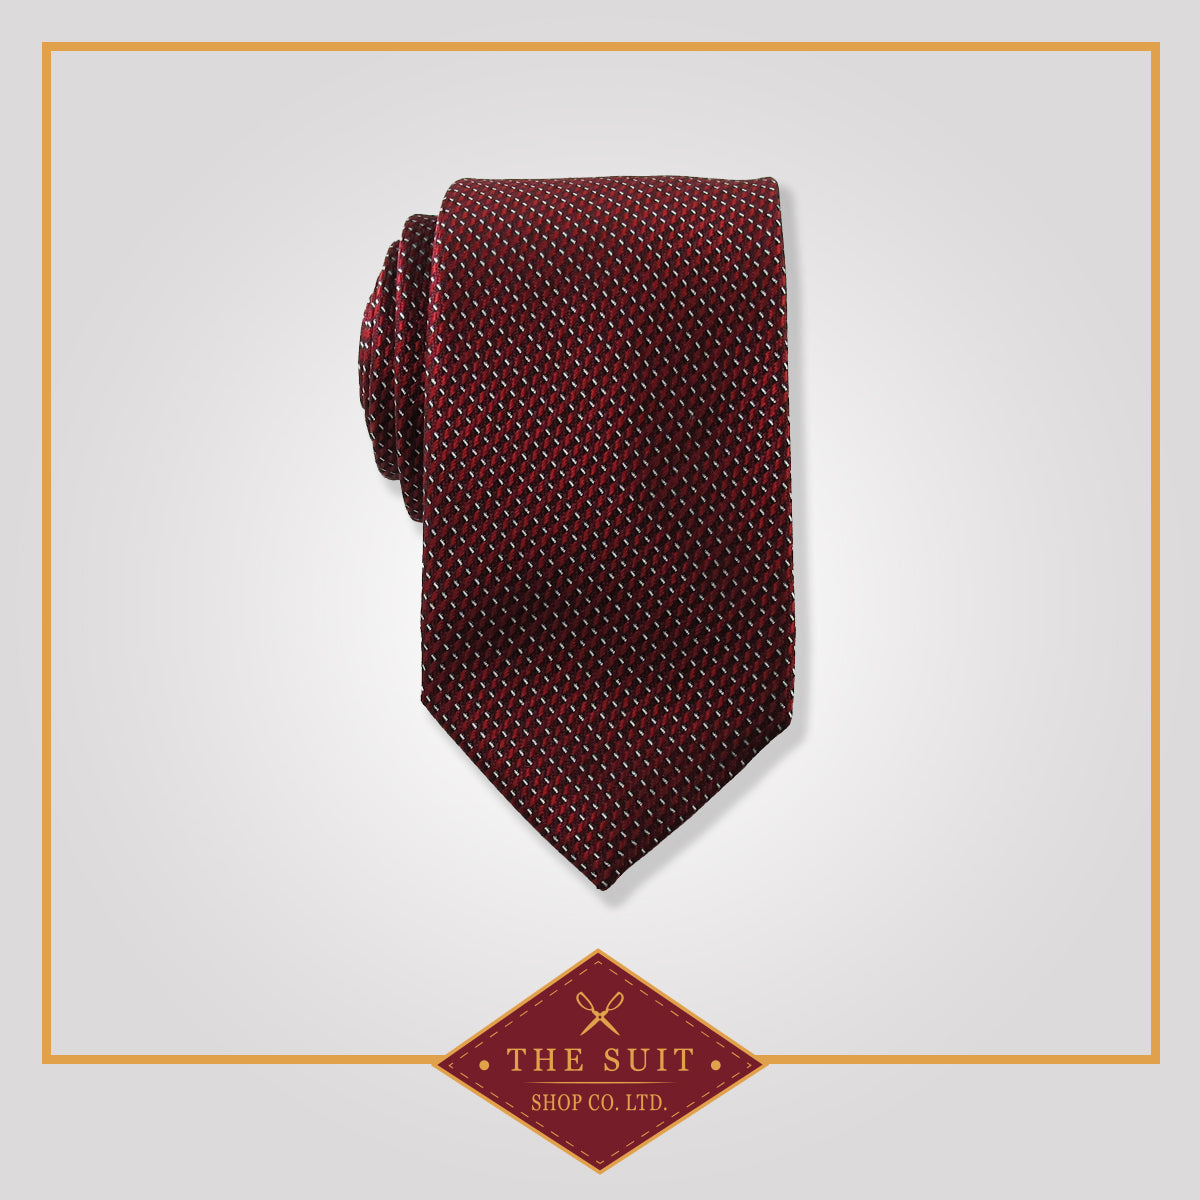 Buccaneer Patterned Tie